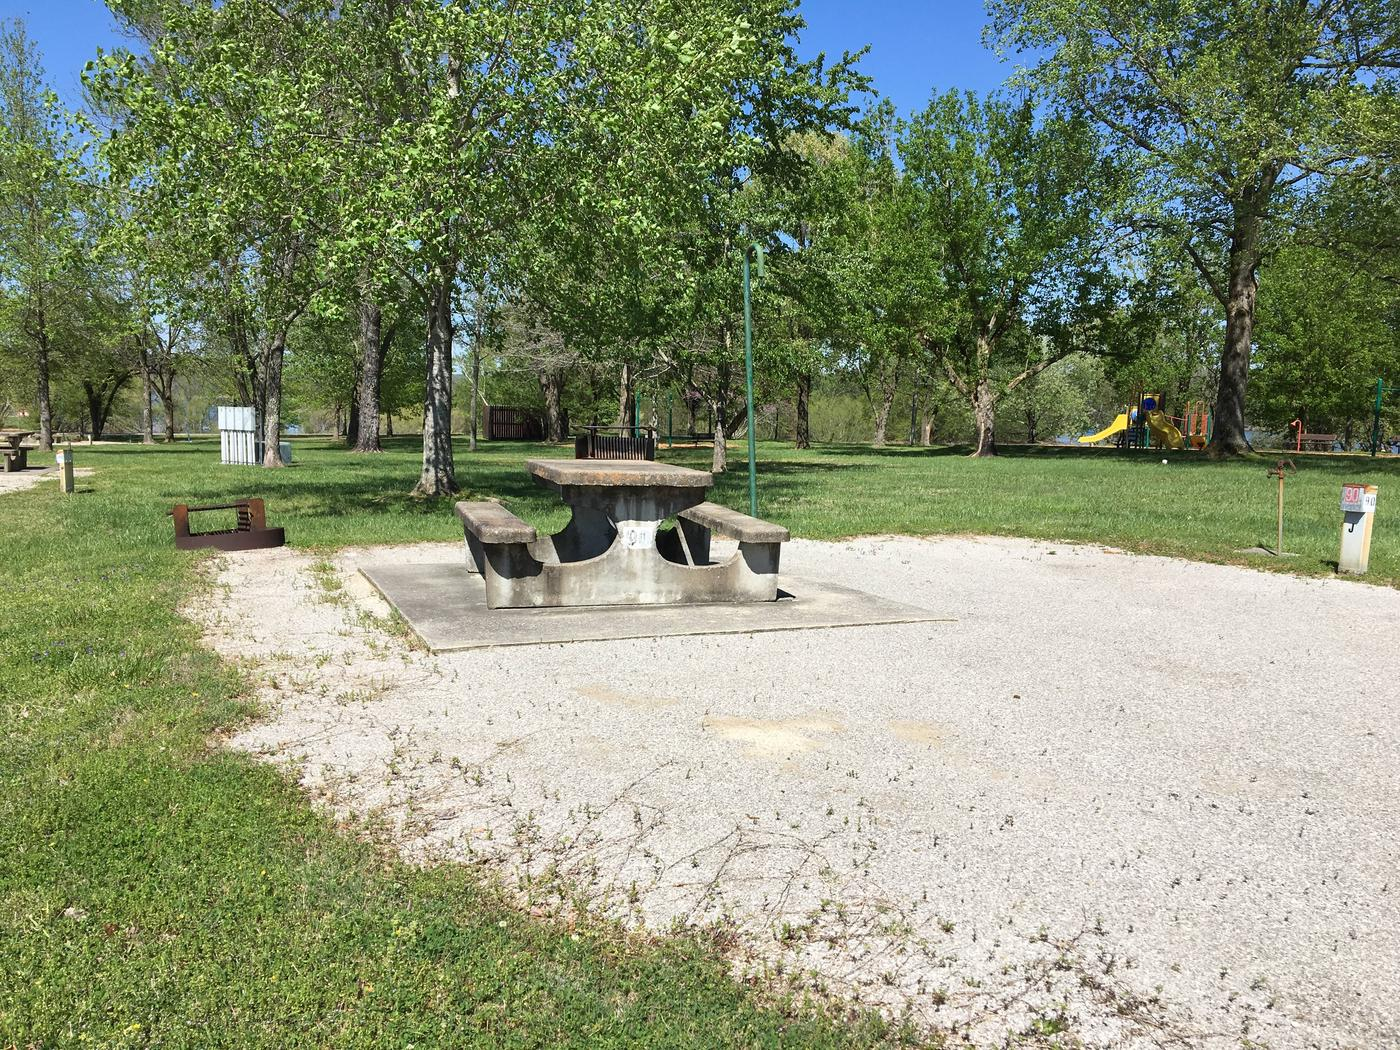 LILLYDALE CAMPGROUND SITE # 90 TABLE LILLYDALE CAMPGROUND SITE # 90